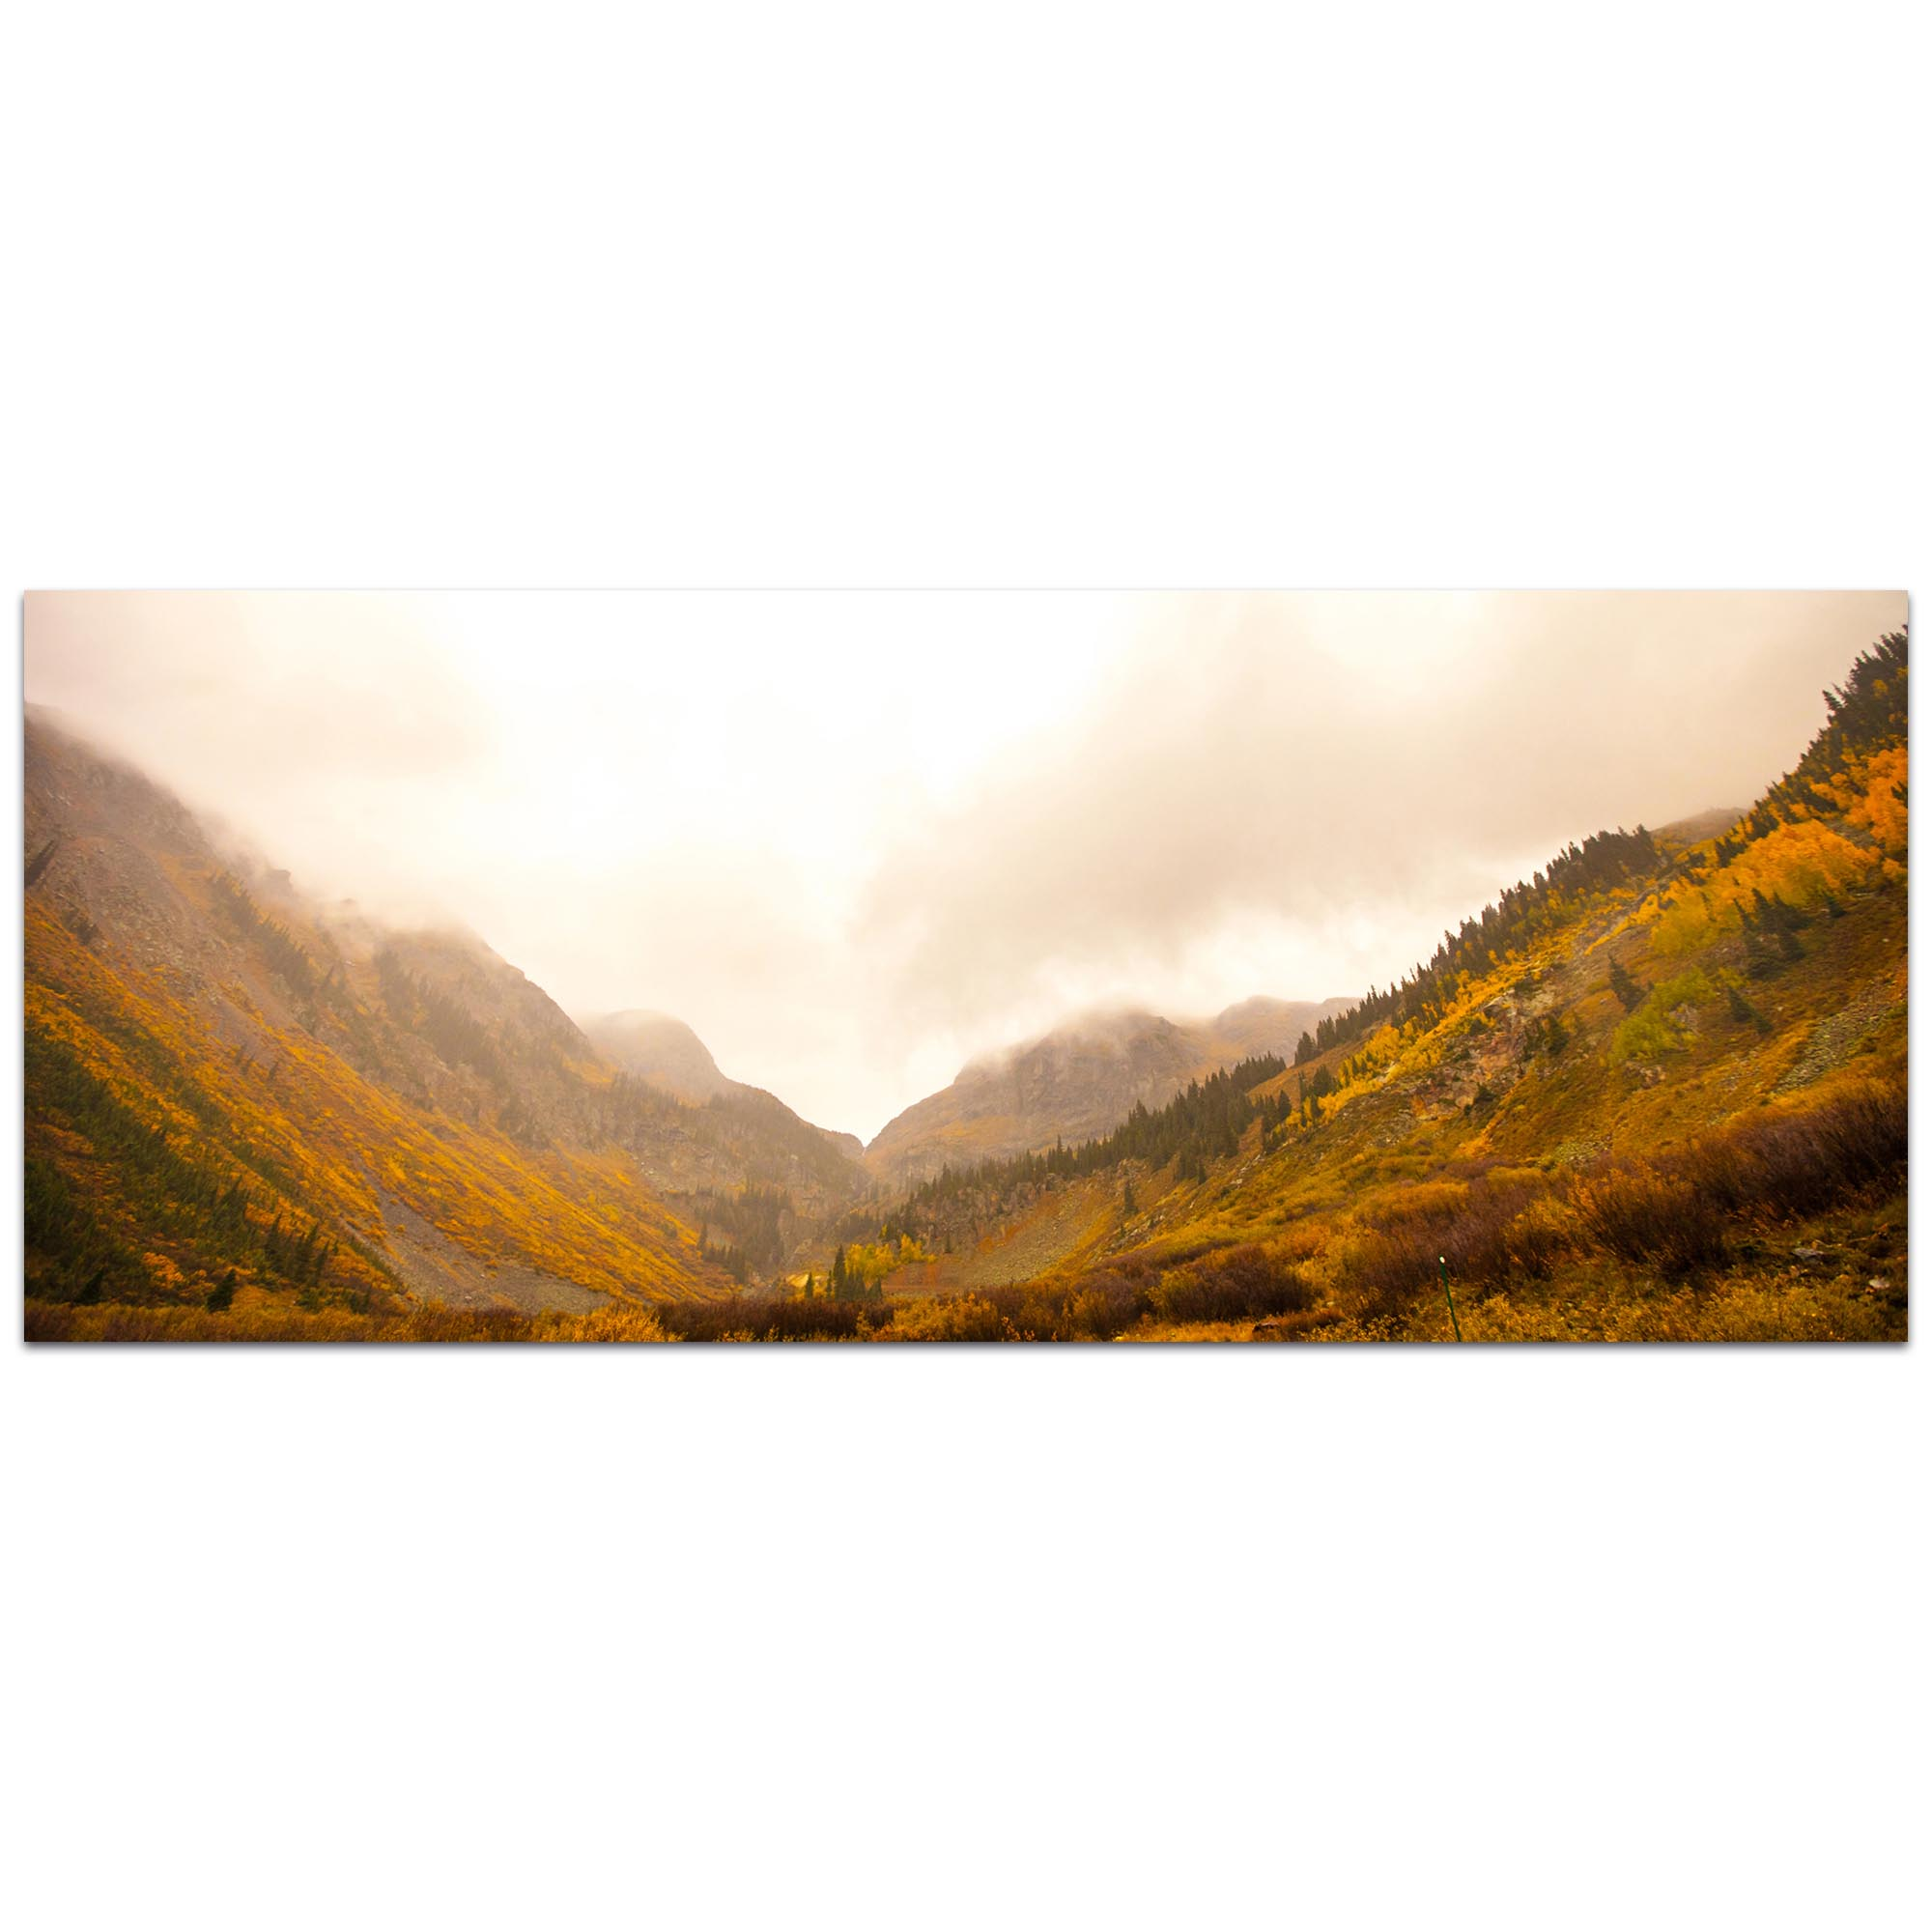 Landscape Photography 'Fog in the Canyon' - Autumn Nature Art on Metal or Plexiglass